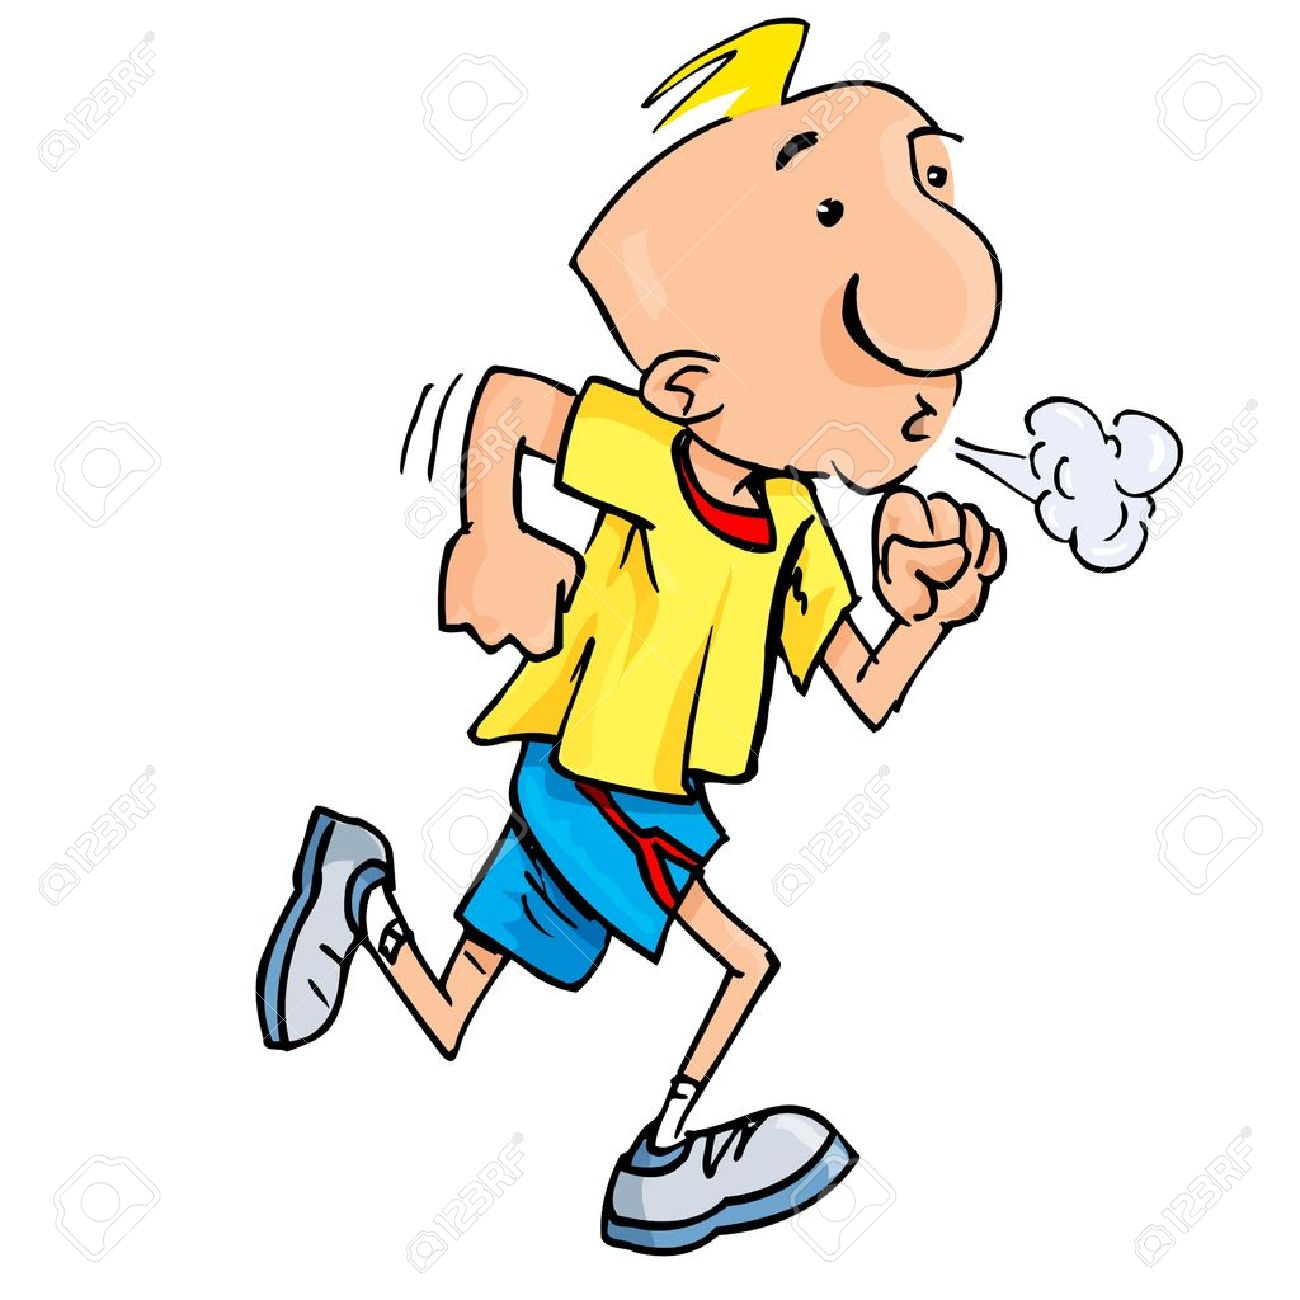 1300x1300 Cartoon Of A Jogging Man Puffing Exertion. Isolated On White